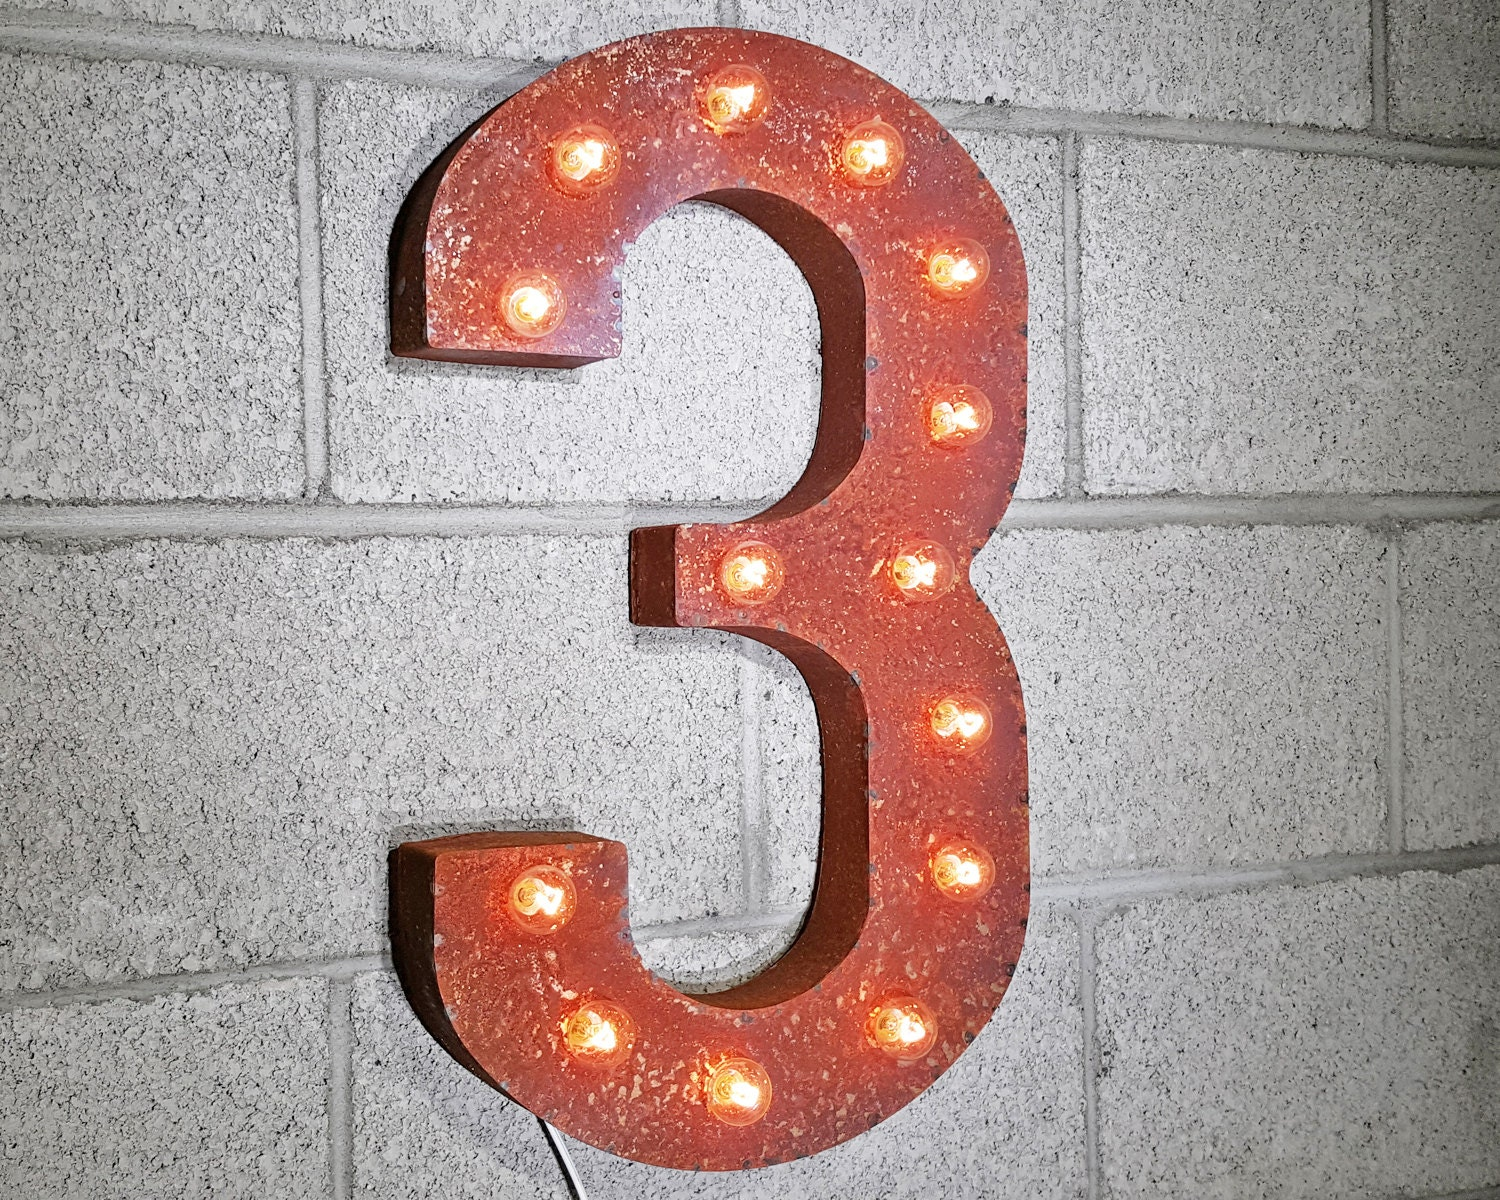 NUMBER 1 2 3 4 5 6 7 8 9 0 Rustic Metal Marquee Sign Battery Operated LED Light